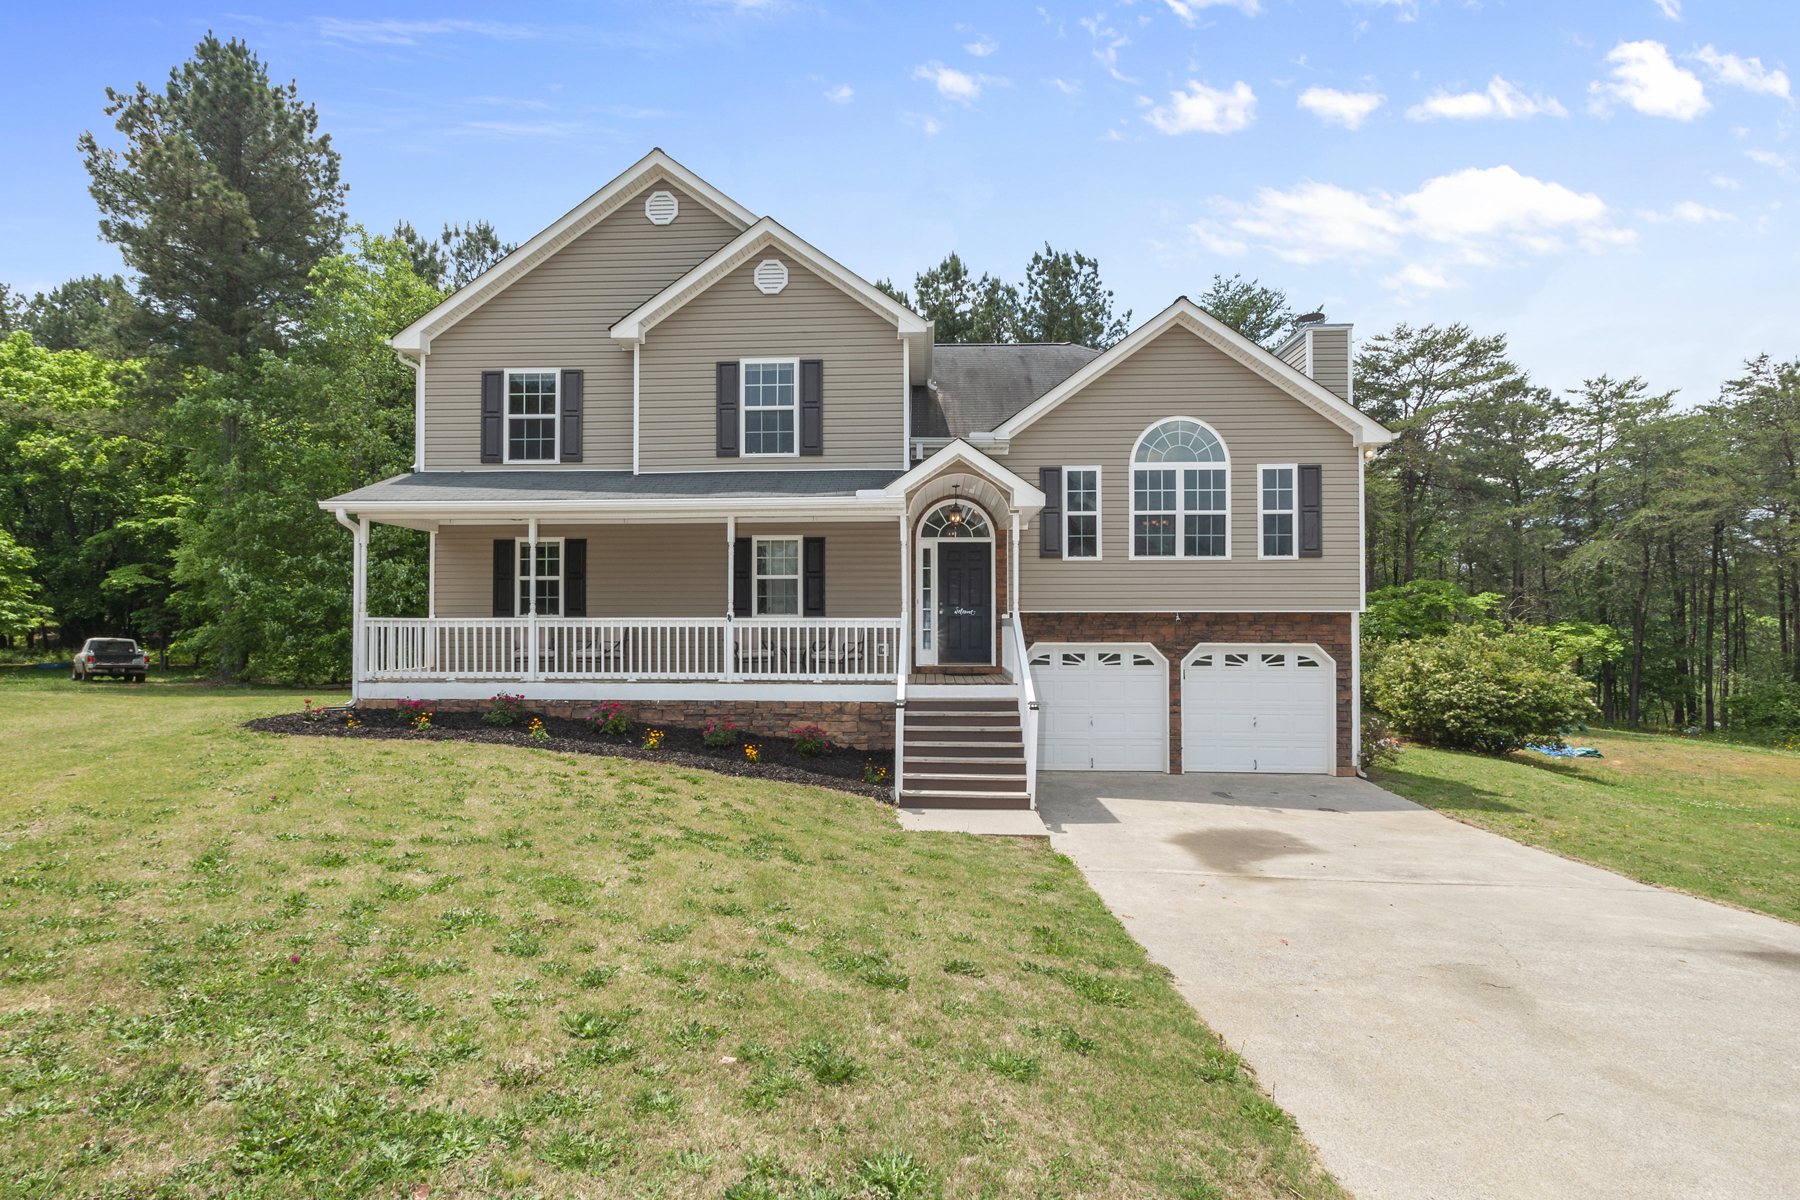 Single Family Home for Sale at Large And In Charge In Hopkins Farm 24 Hopkins Breeze Adairsville, Georgia 30103 United States